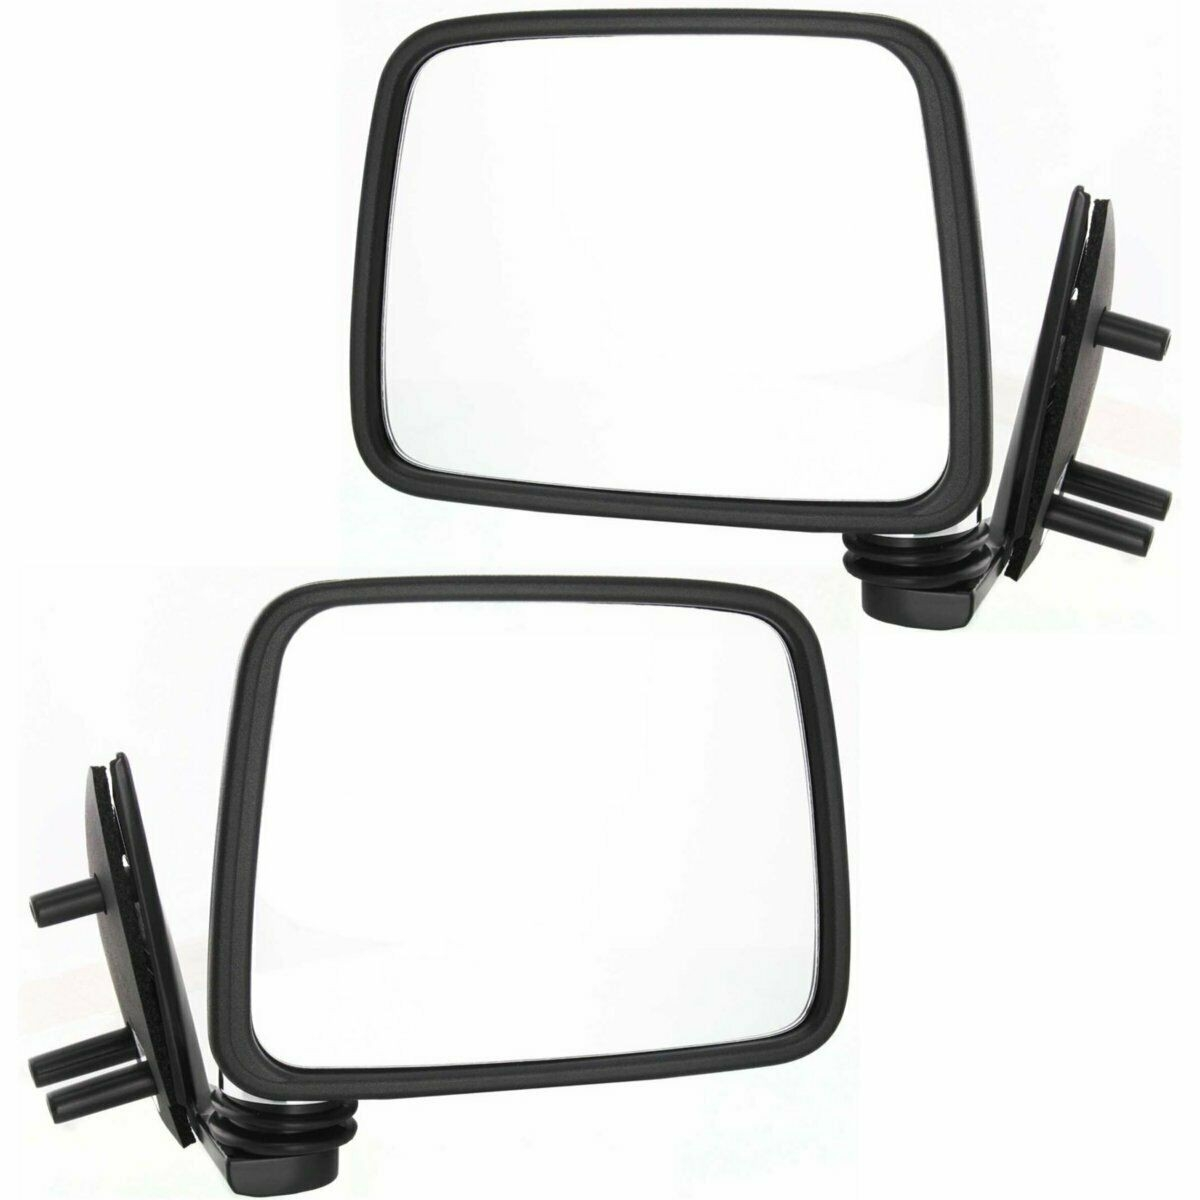 New Mirror Right Left Fits Nissan D21 1986-94 NI1320109